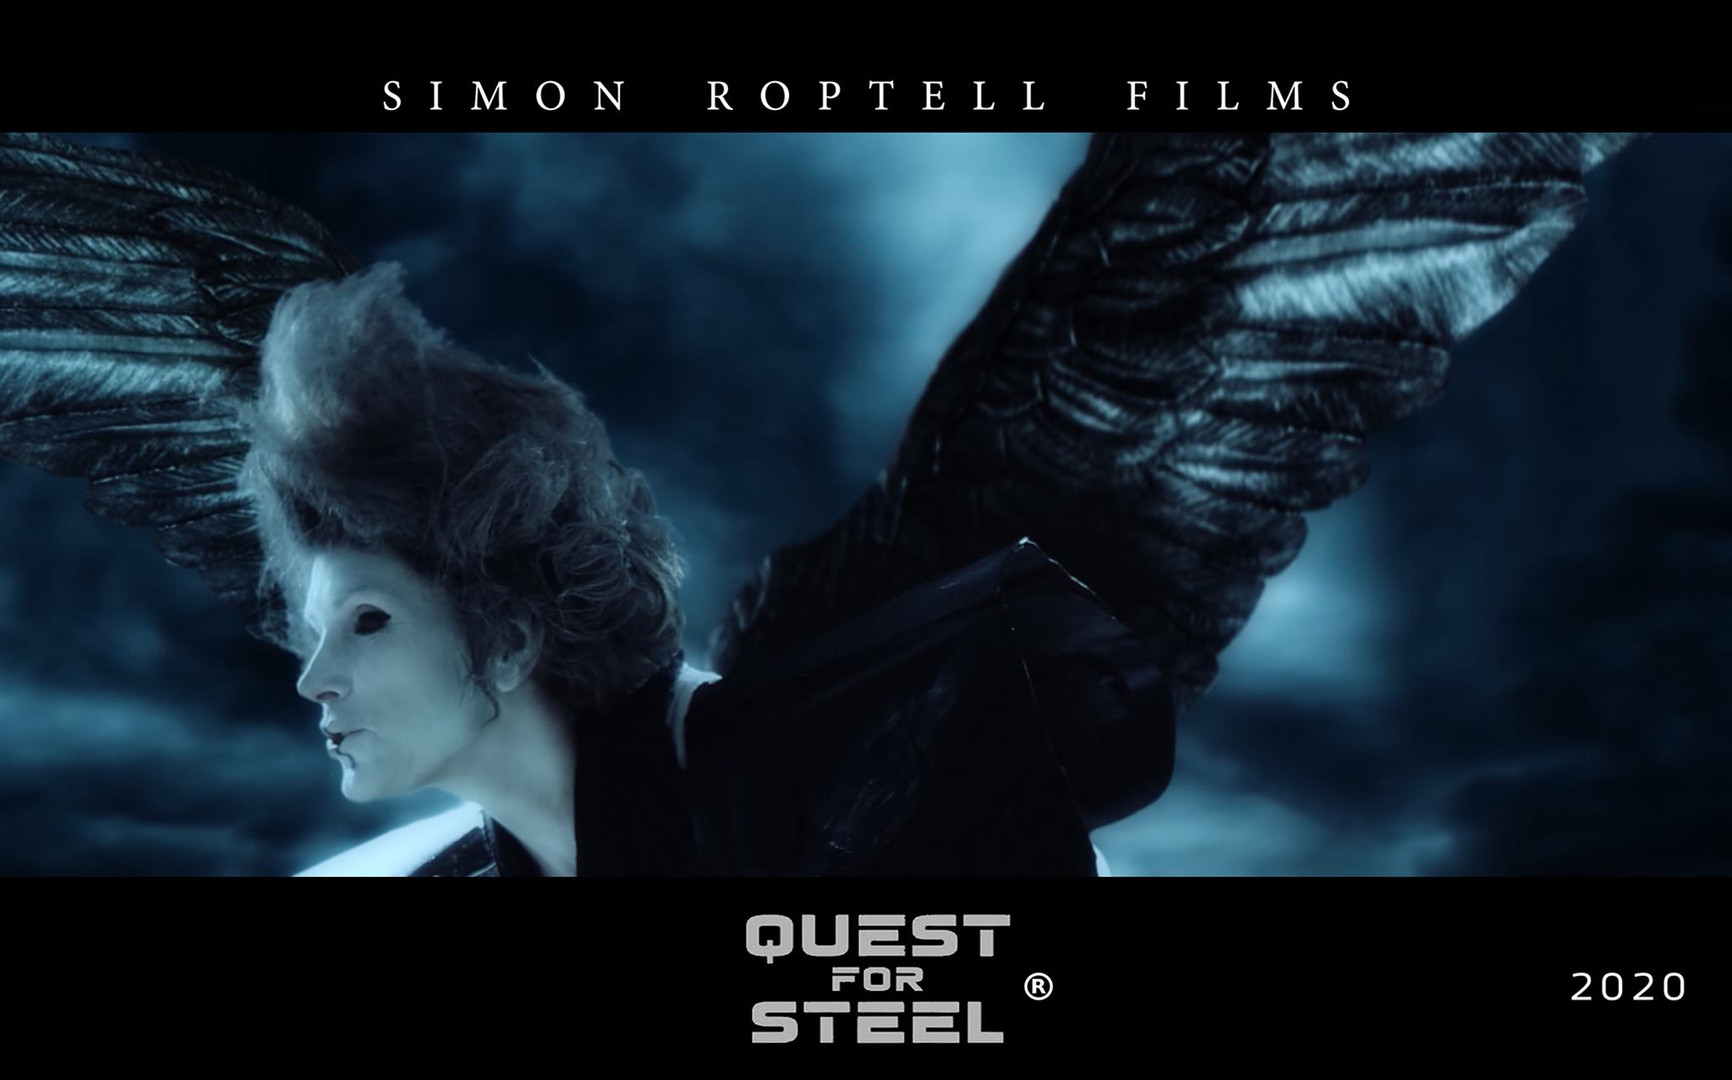 The Greek Siren from Quest for Steel (C)